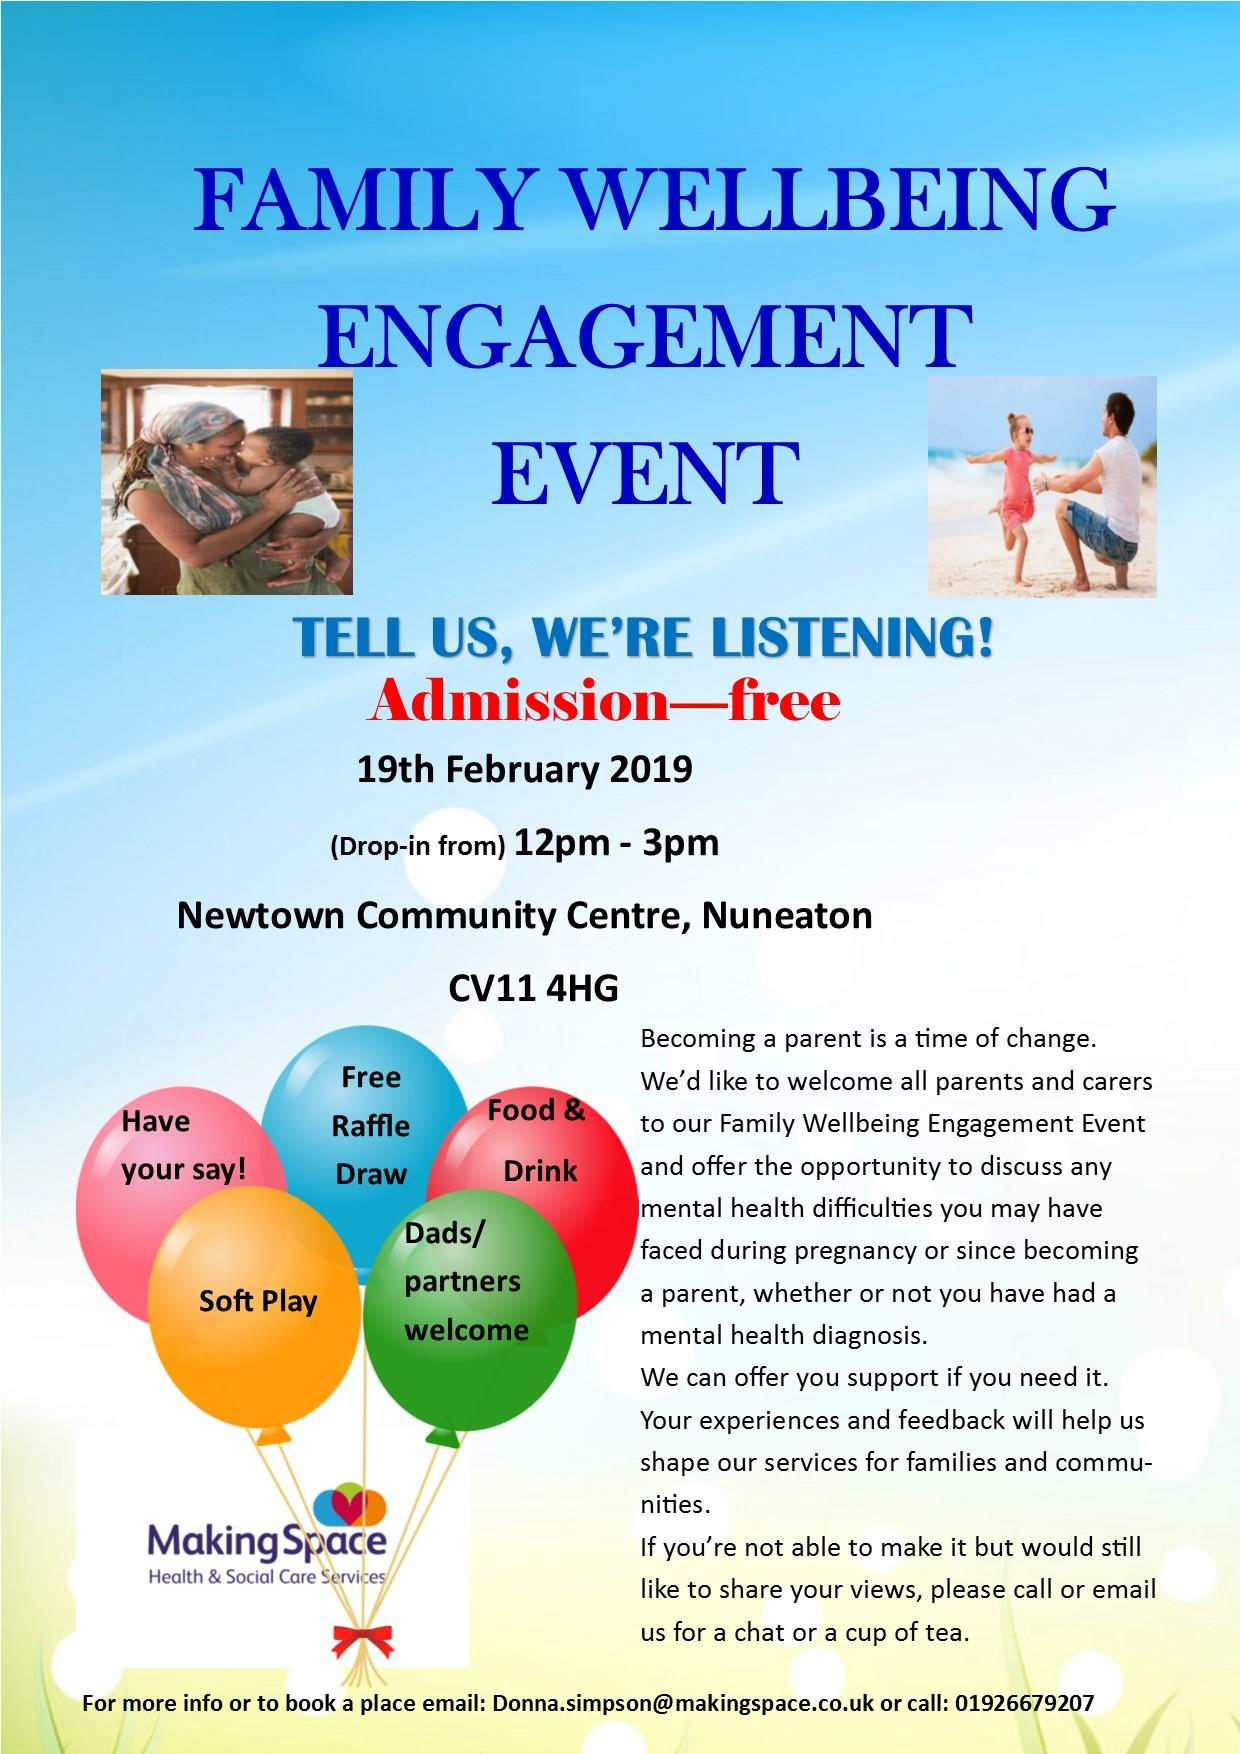 Family Wellbeing Events in Nuneaton